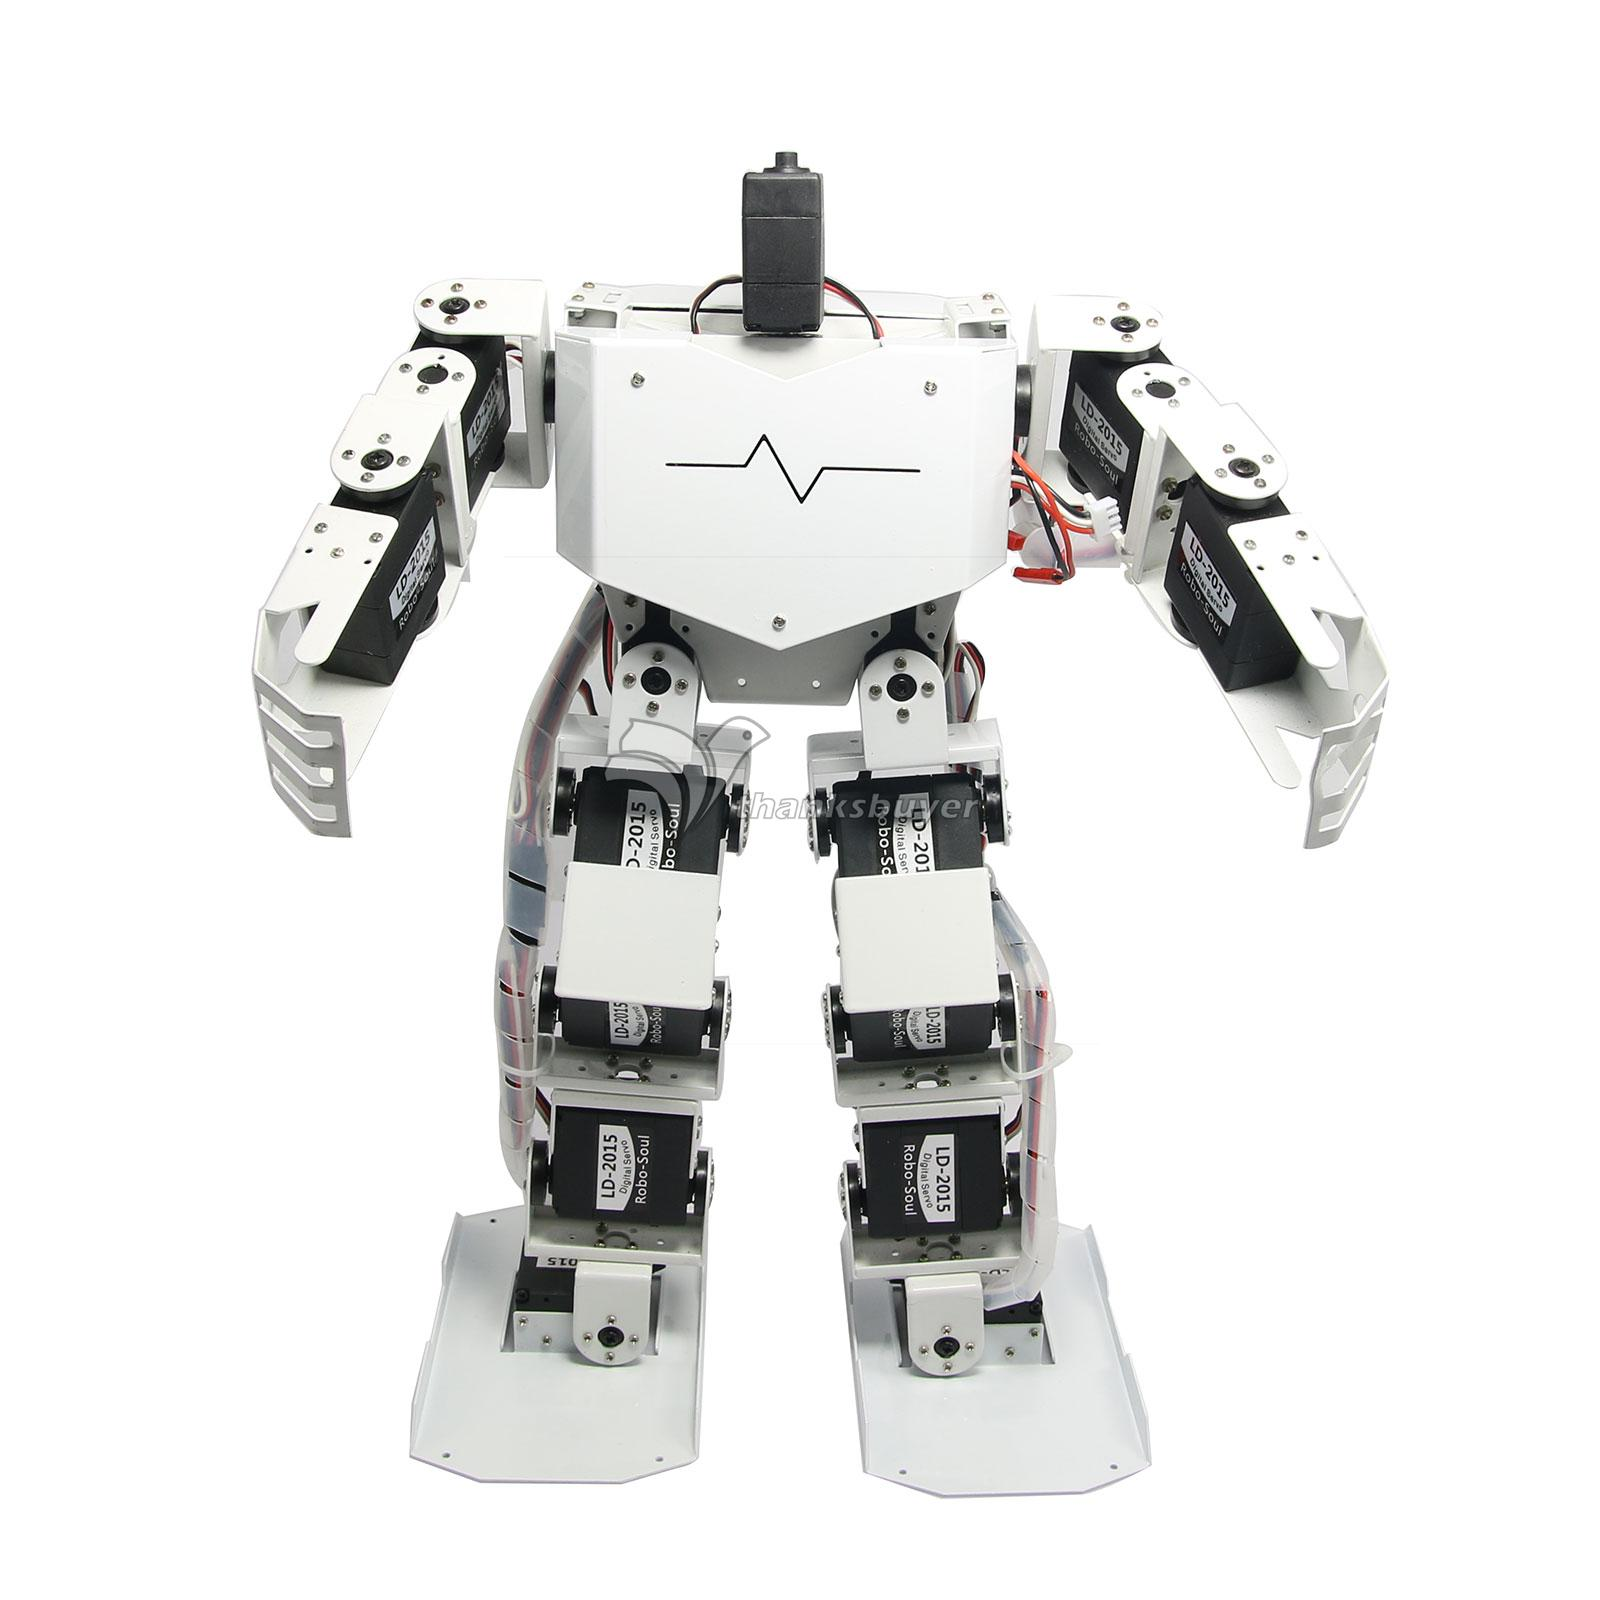 17DOF Robo-Soul H3.0 Biped Robotics Two-Legged Human Robot Aluminum Frame Kit Only No Servos White new 17 degrees of freedom humanoid biped robot teaching and research biped robot platform model no electronic control system